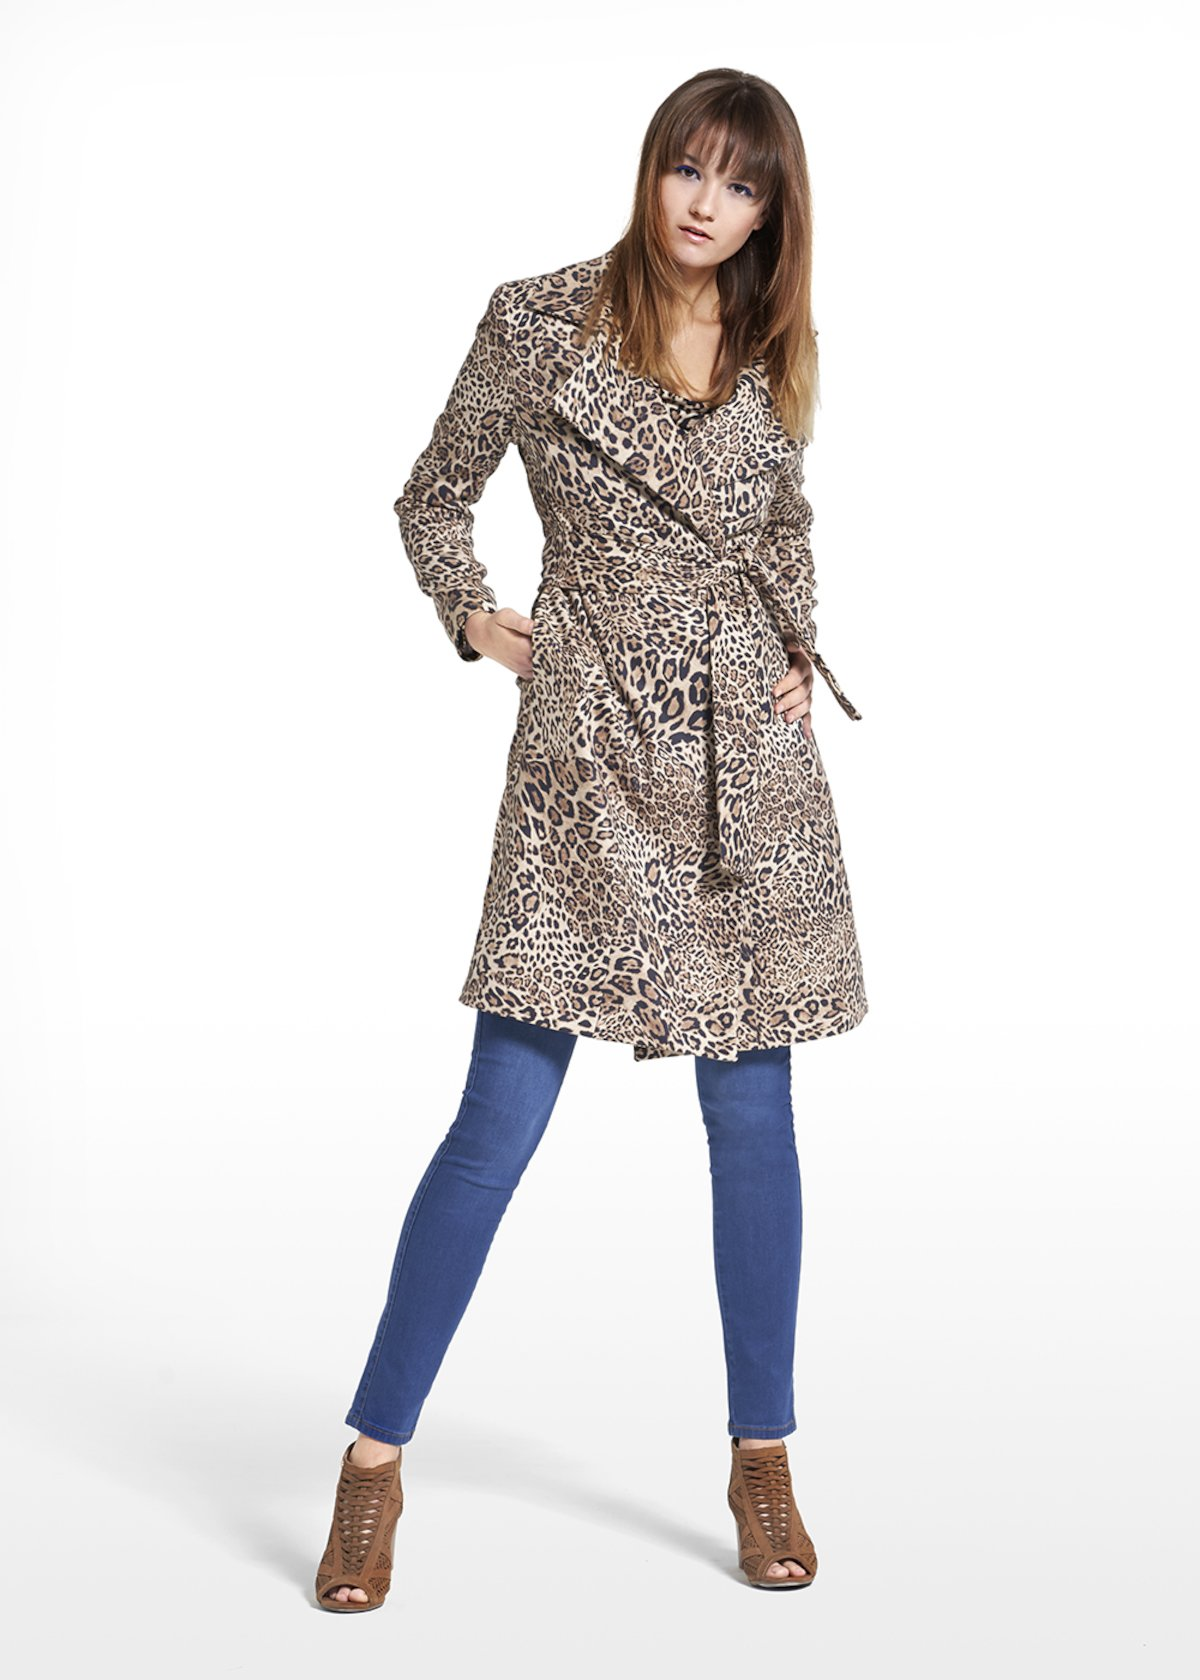 Coat Camilo in patterned spotted fabric - Beige / Black Animalier - Woman